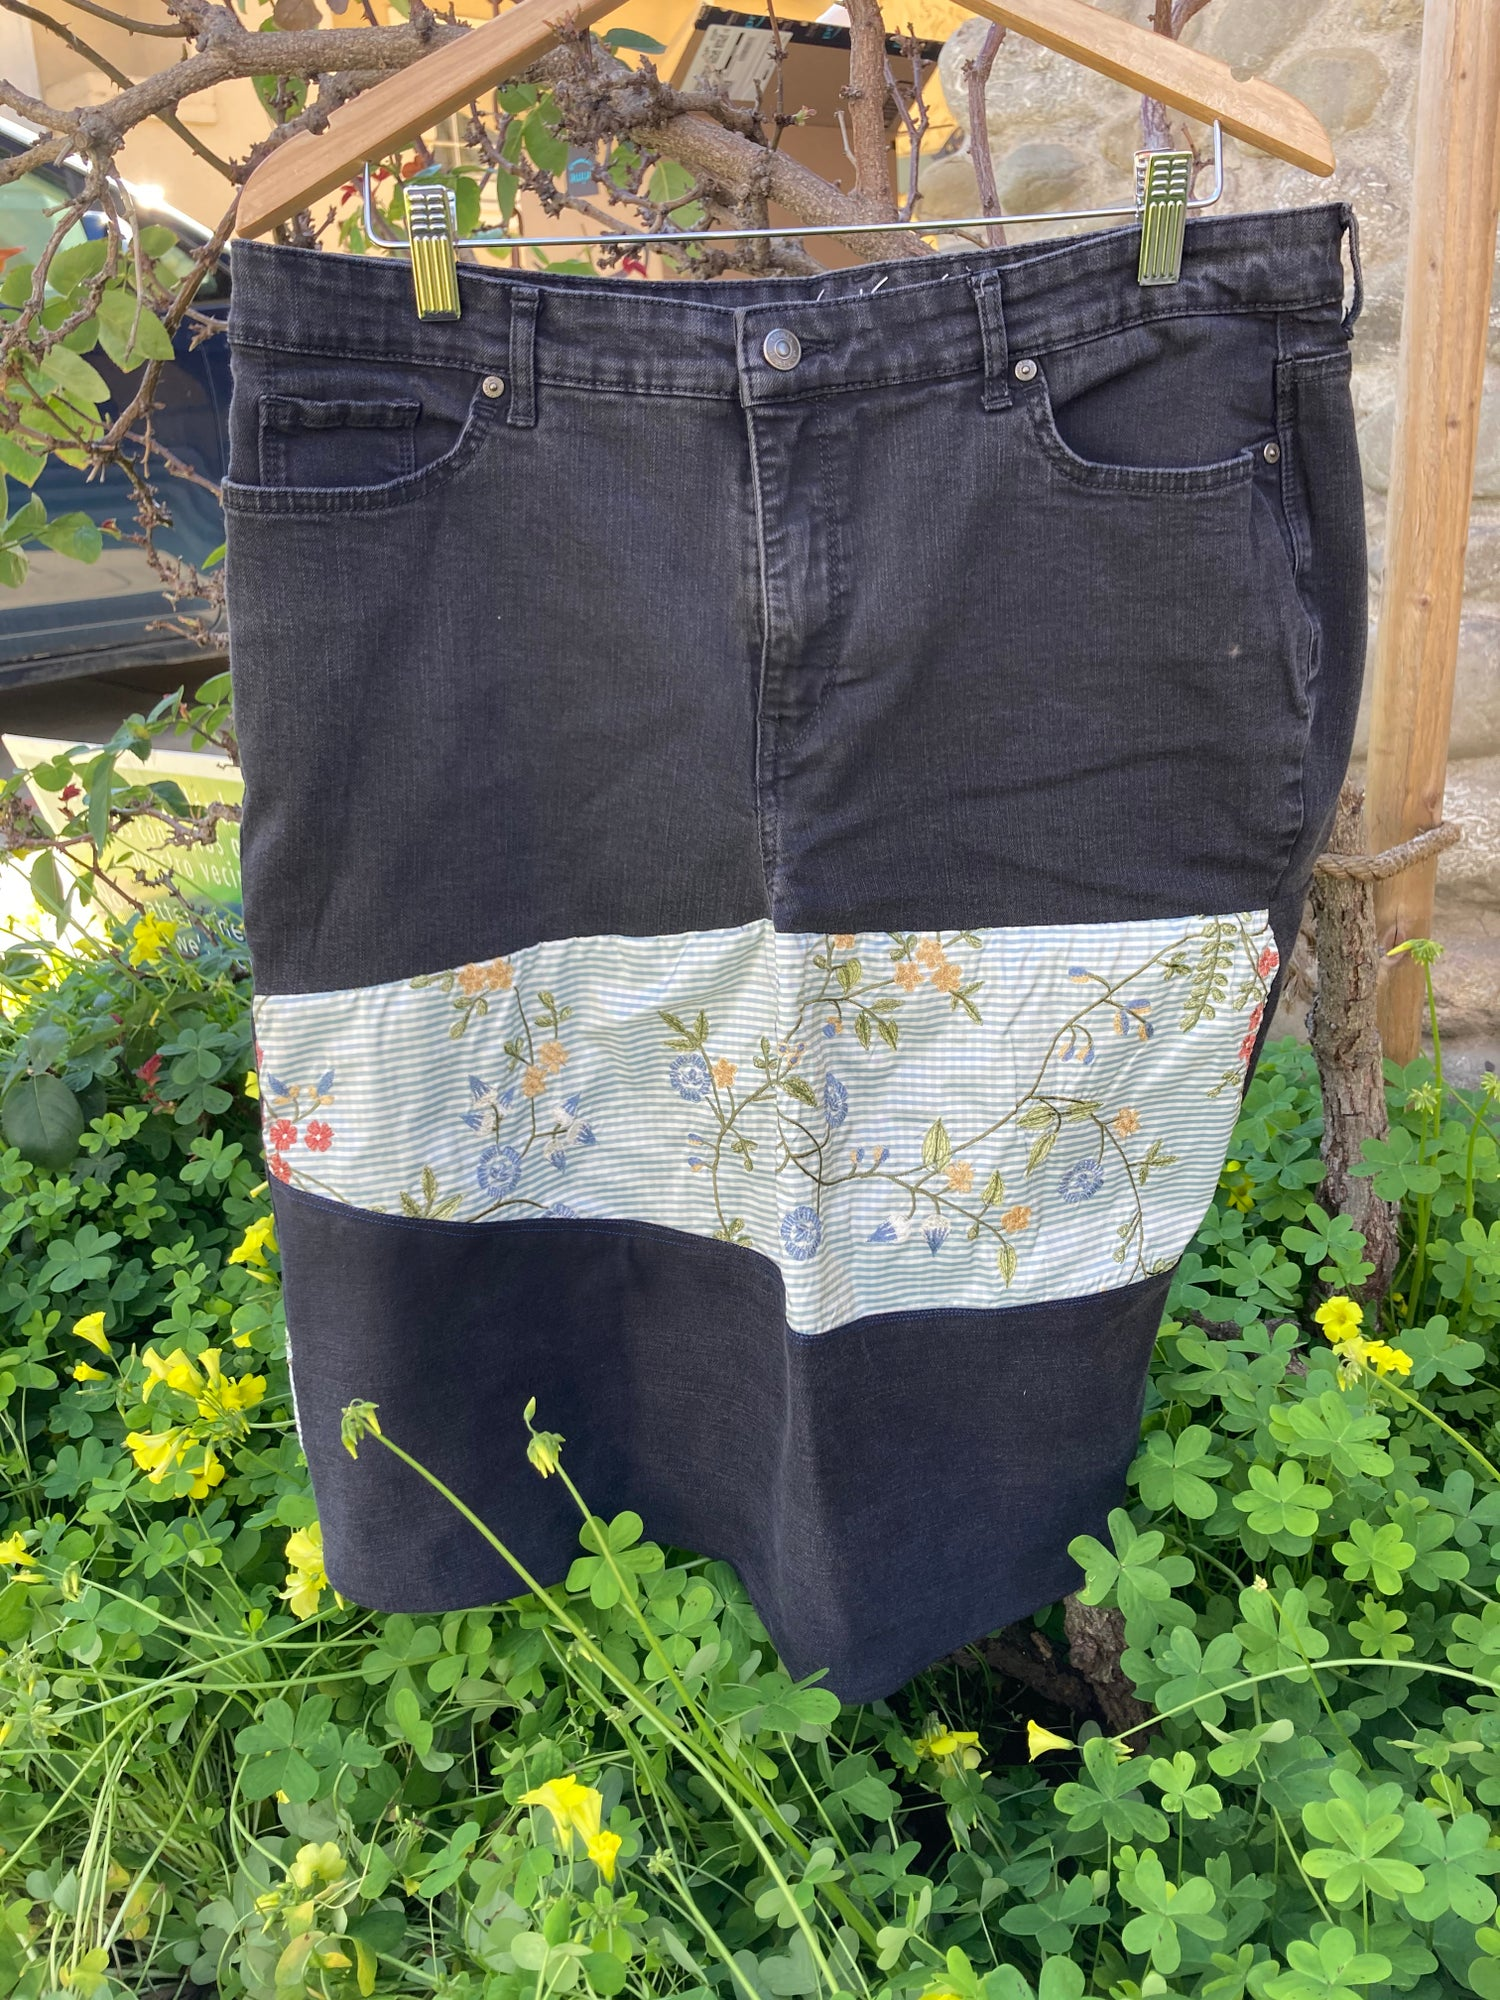 Image of Upcycled black and floral skirt